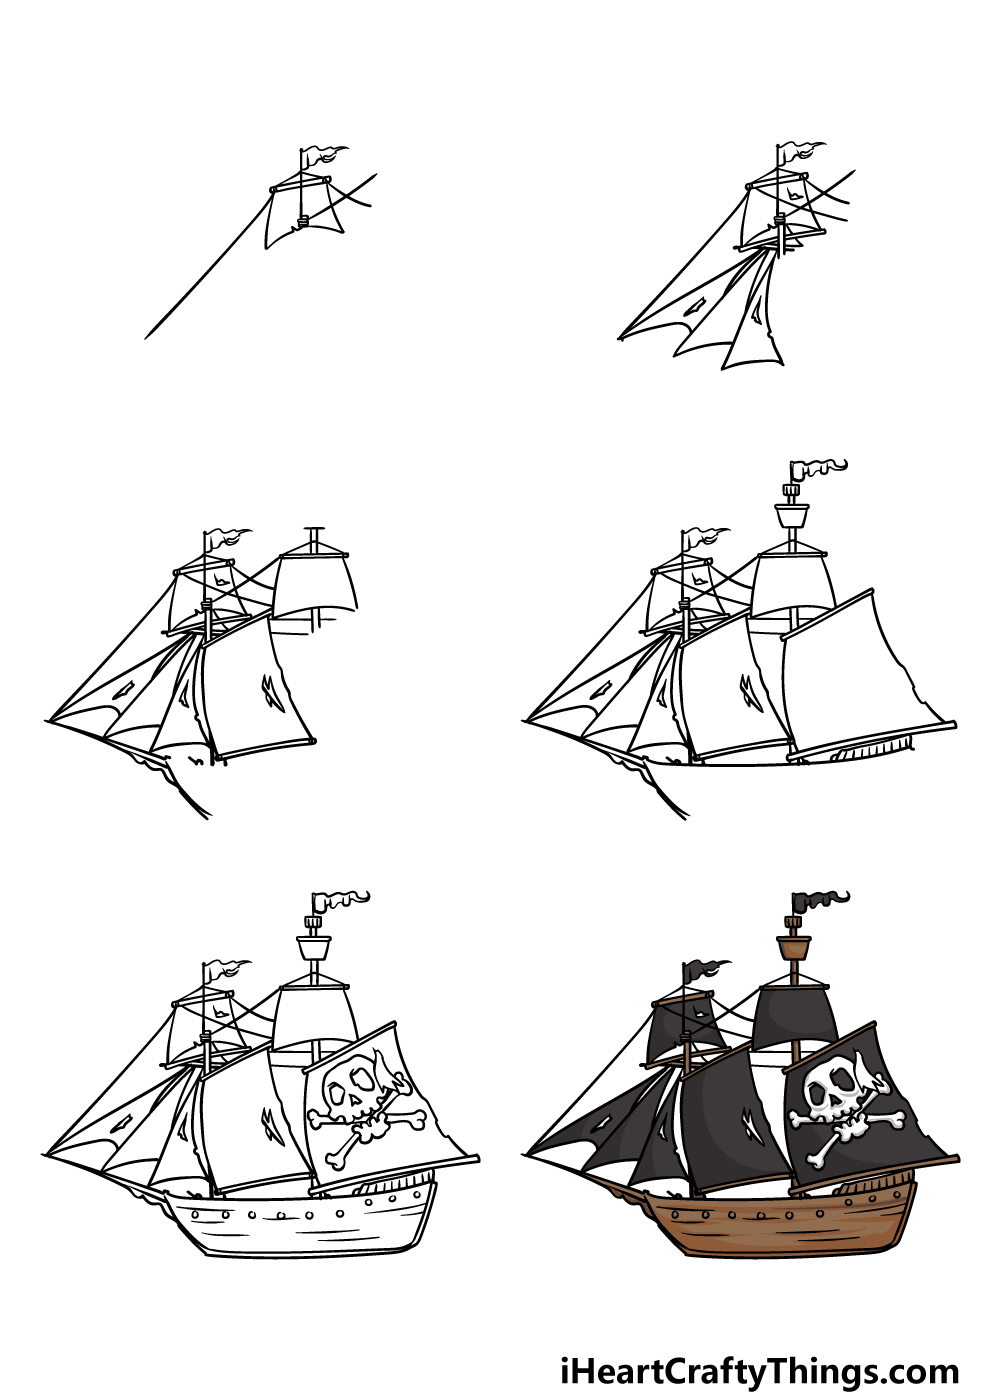 how to draw a pirate ship in 6 steps